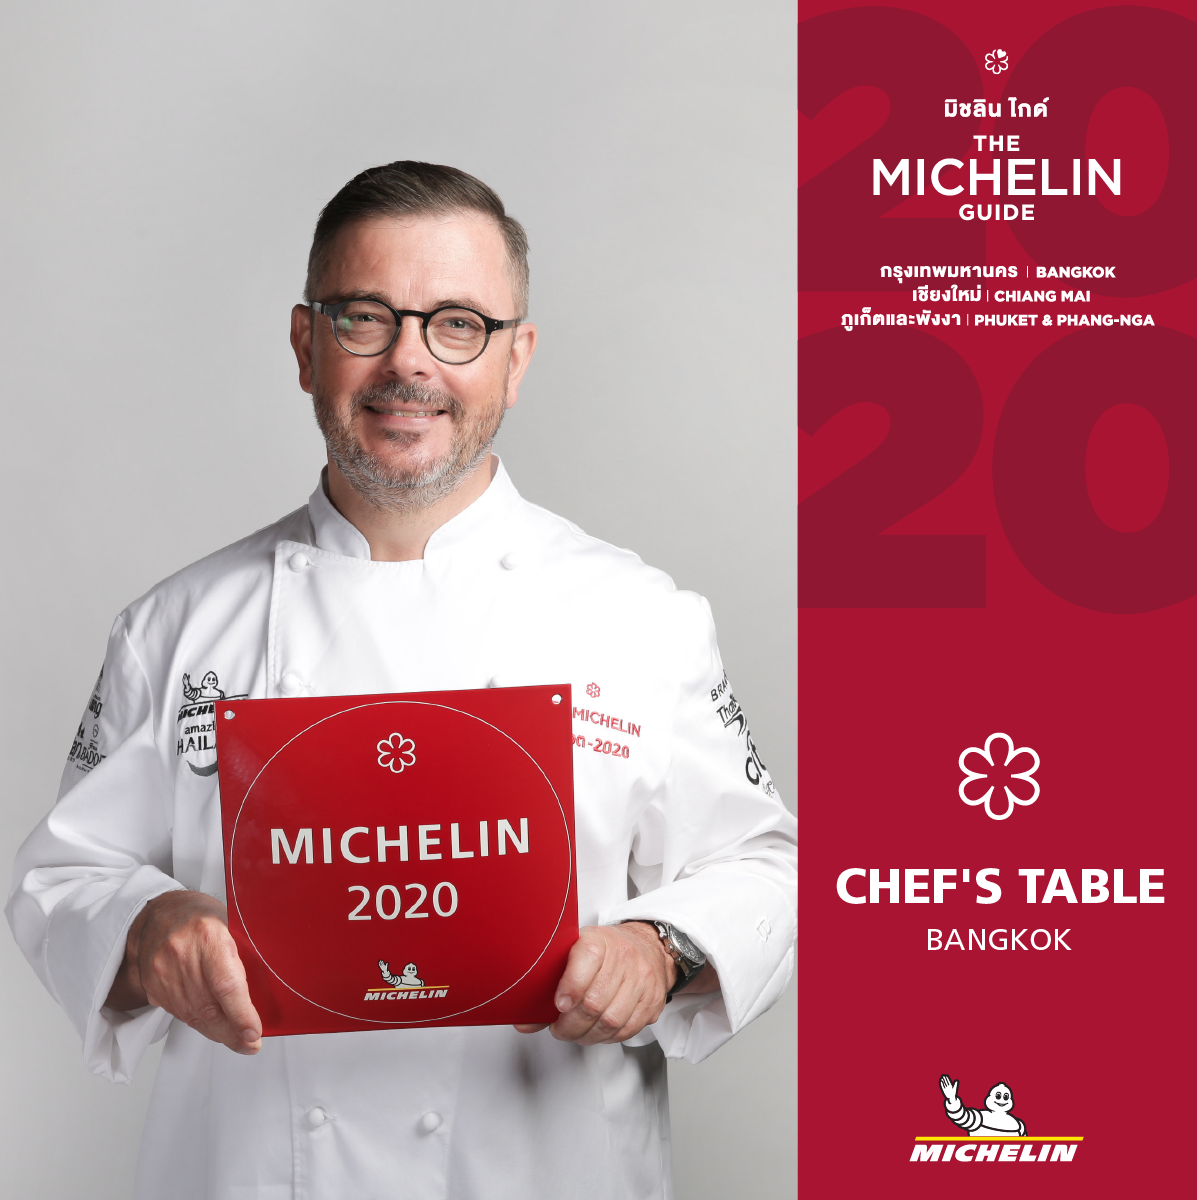 Chef Vincent Thierry - Chef's Table